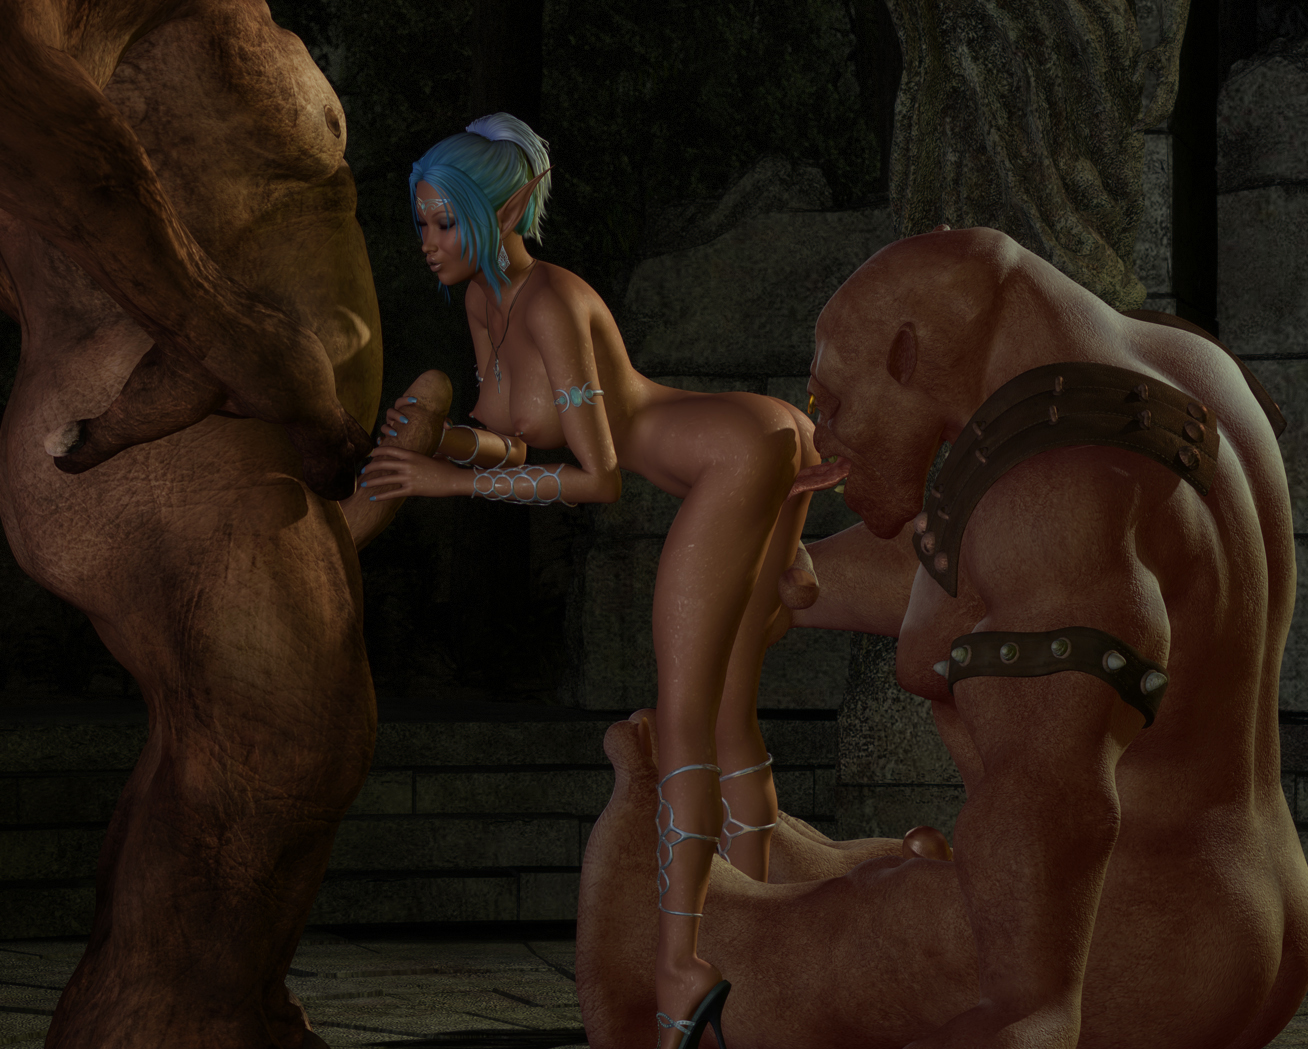 Porno 3d pix elves fucked by monsters porn woman